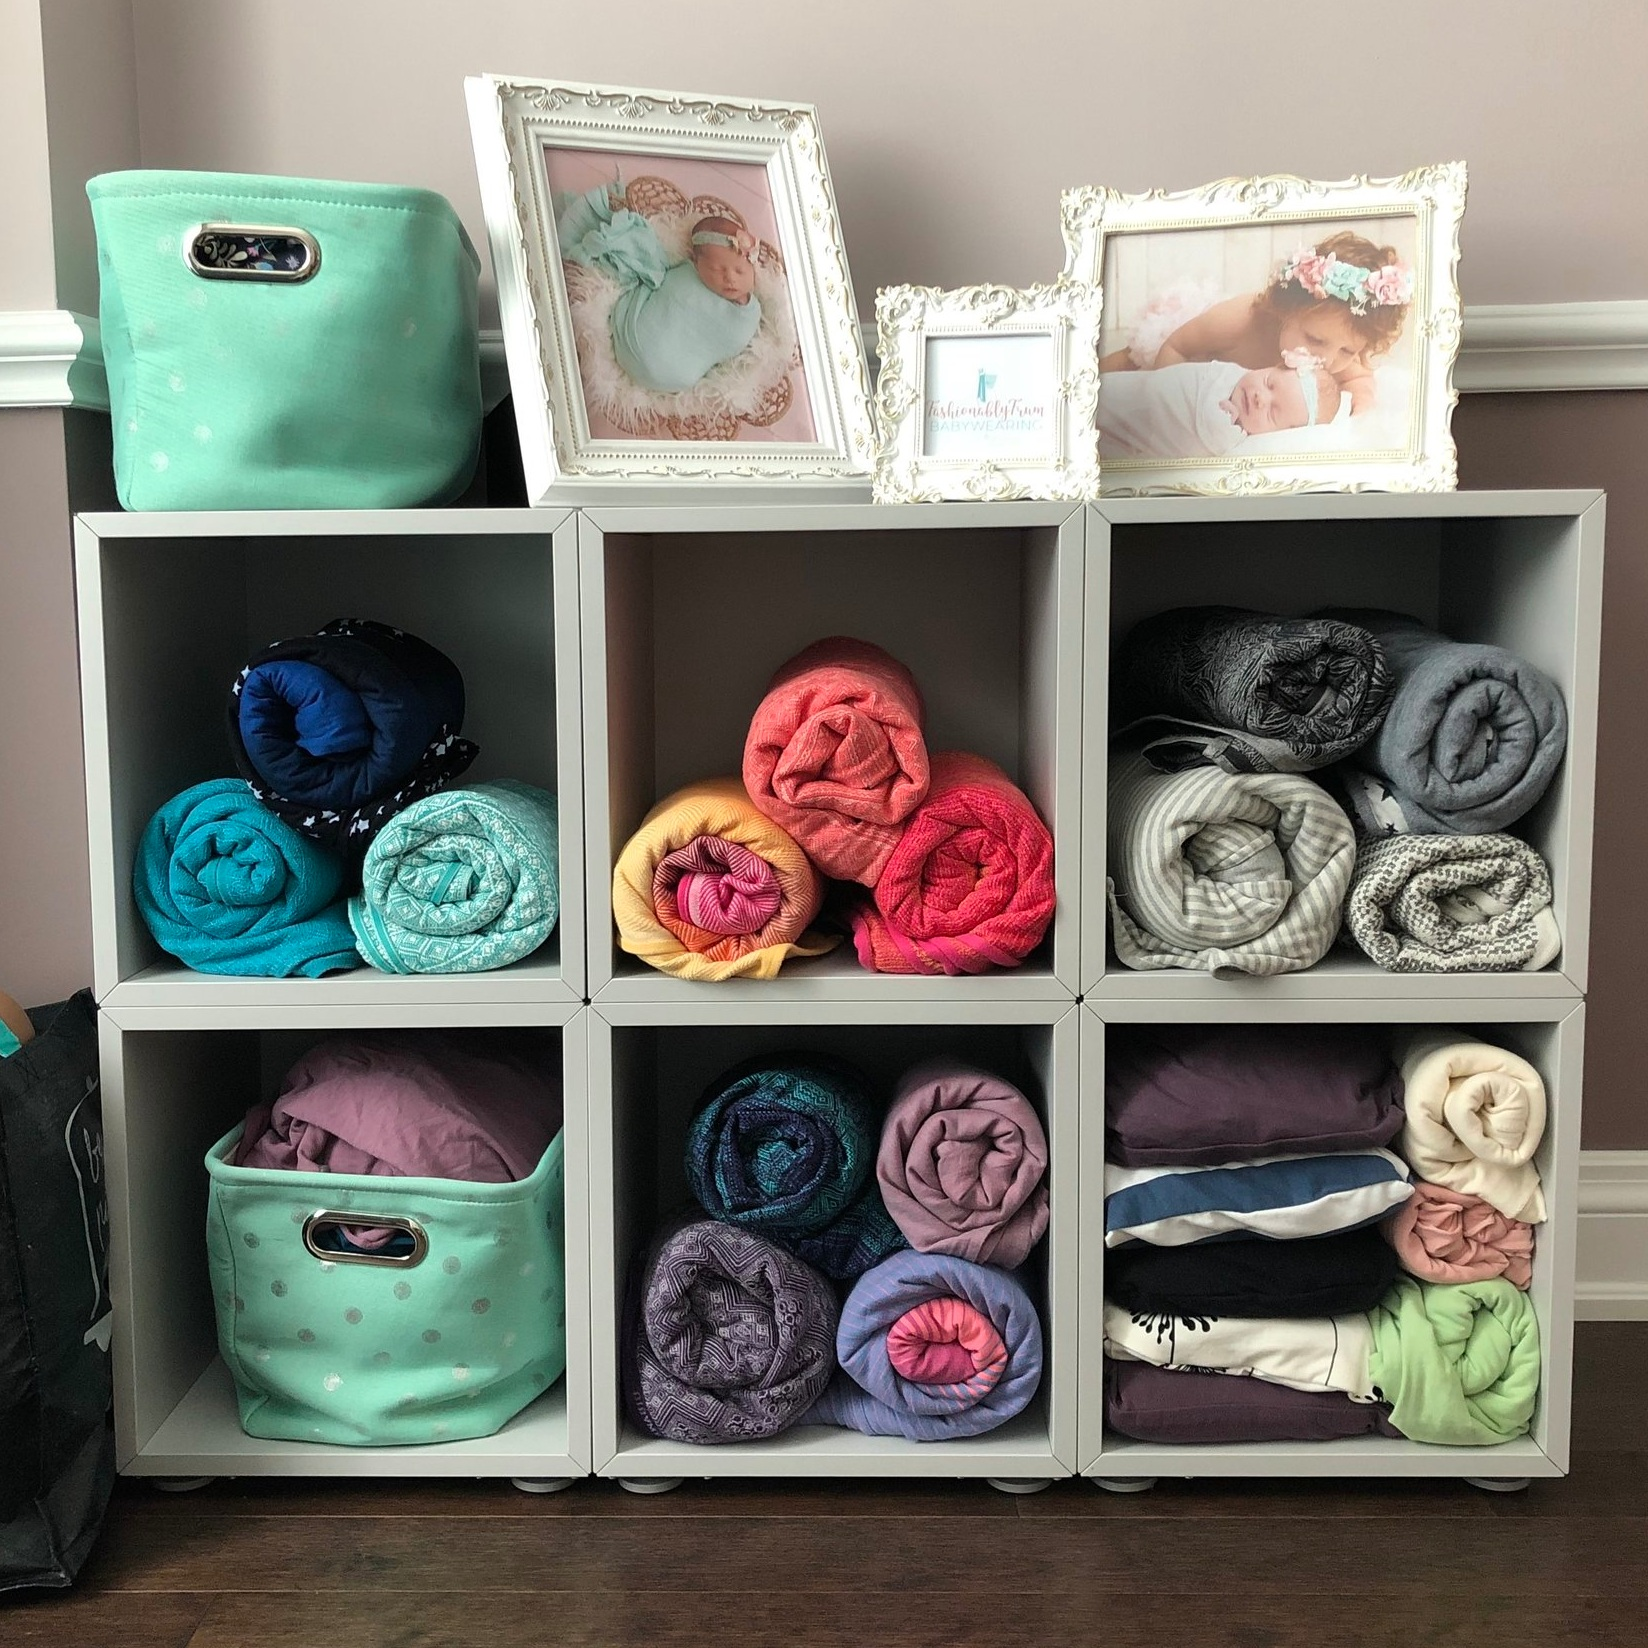 Woven wraps and stretchy wraps on display at the babywearing studio.